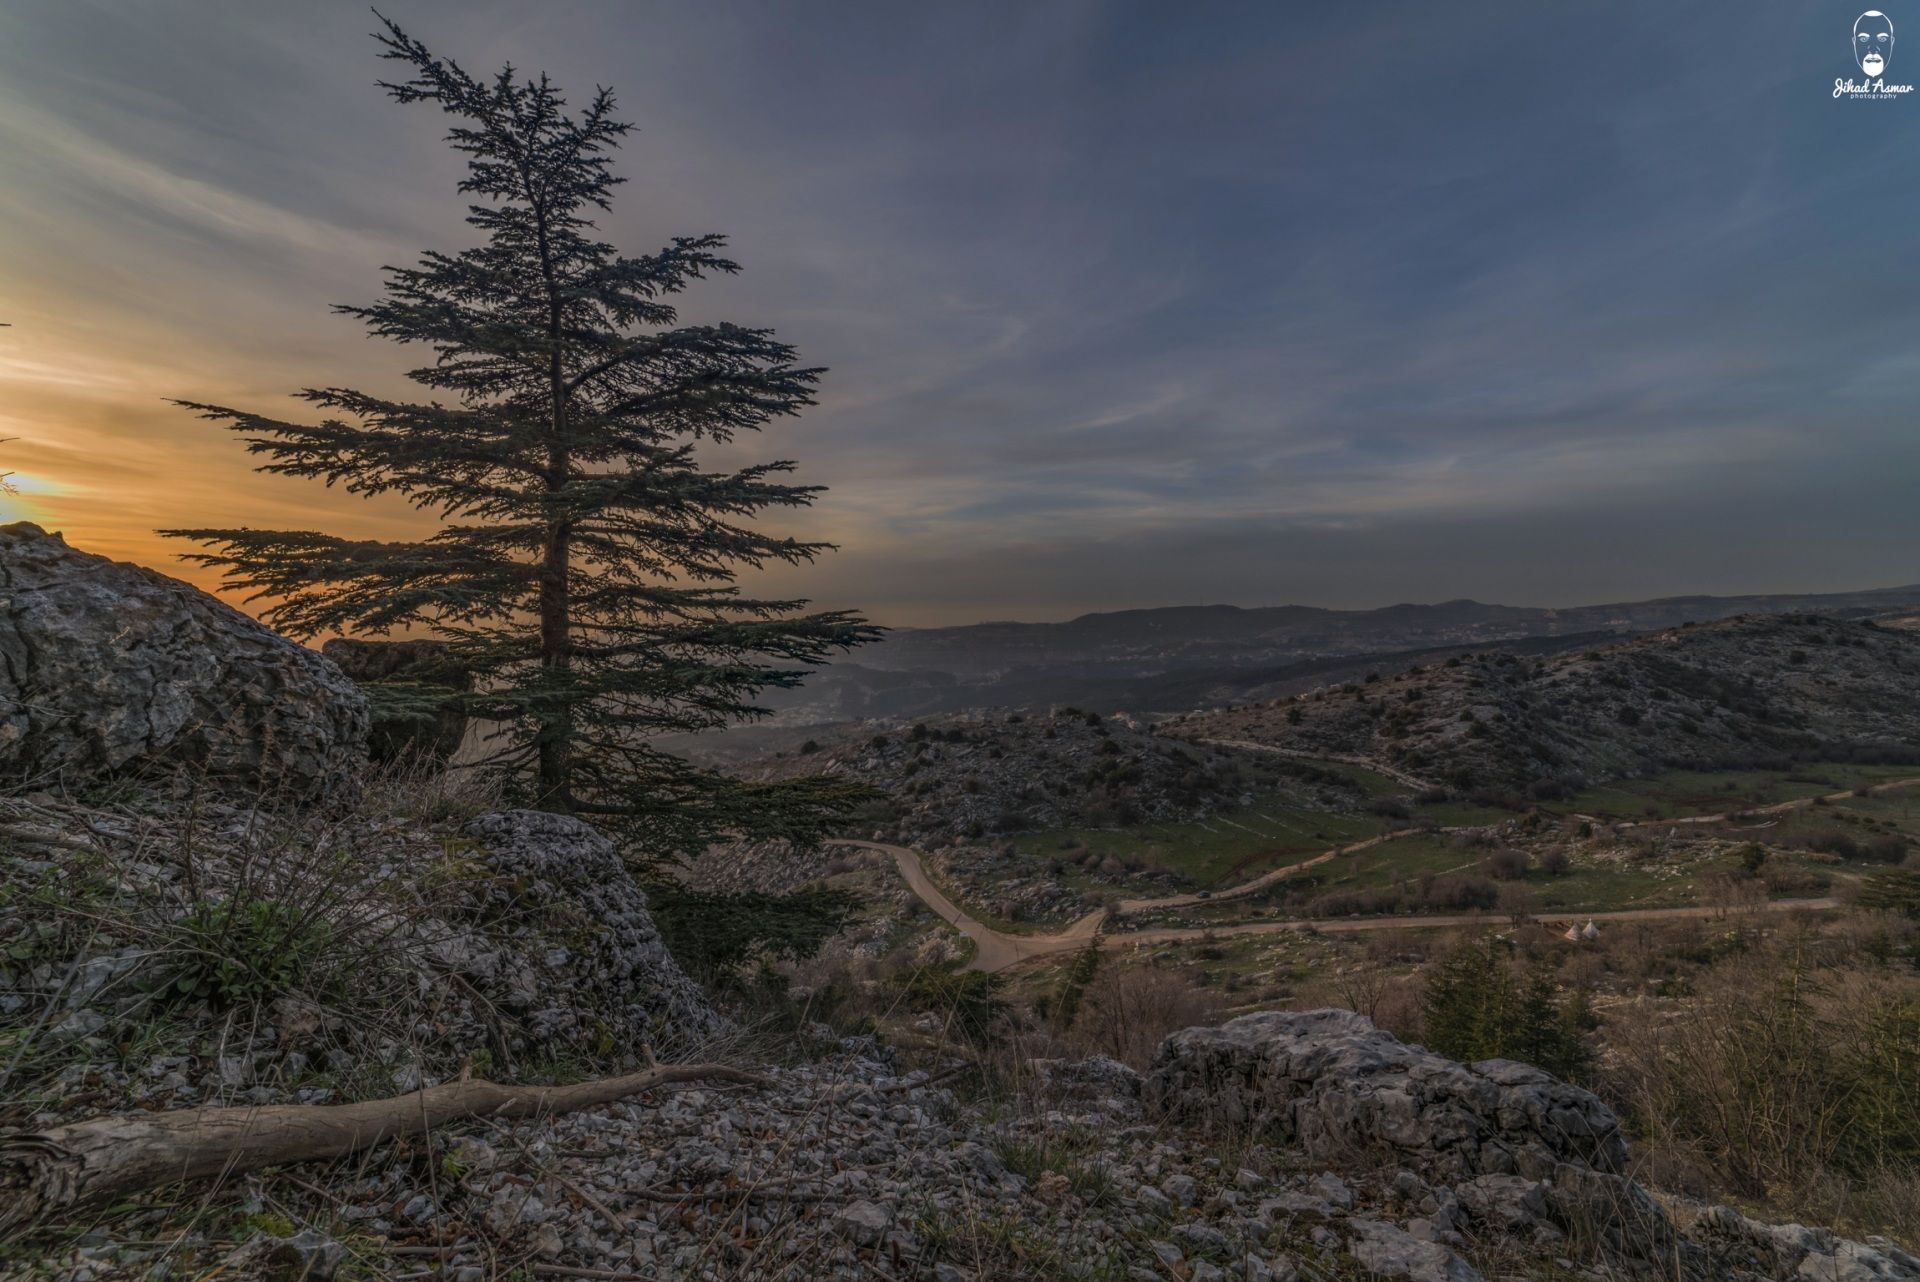 Lebanese Landscape Photographer, Lebanese Photographer,  Lebanese Mountains